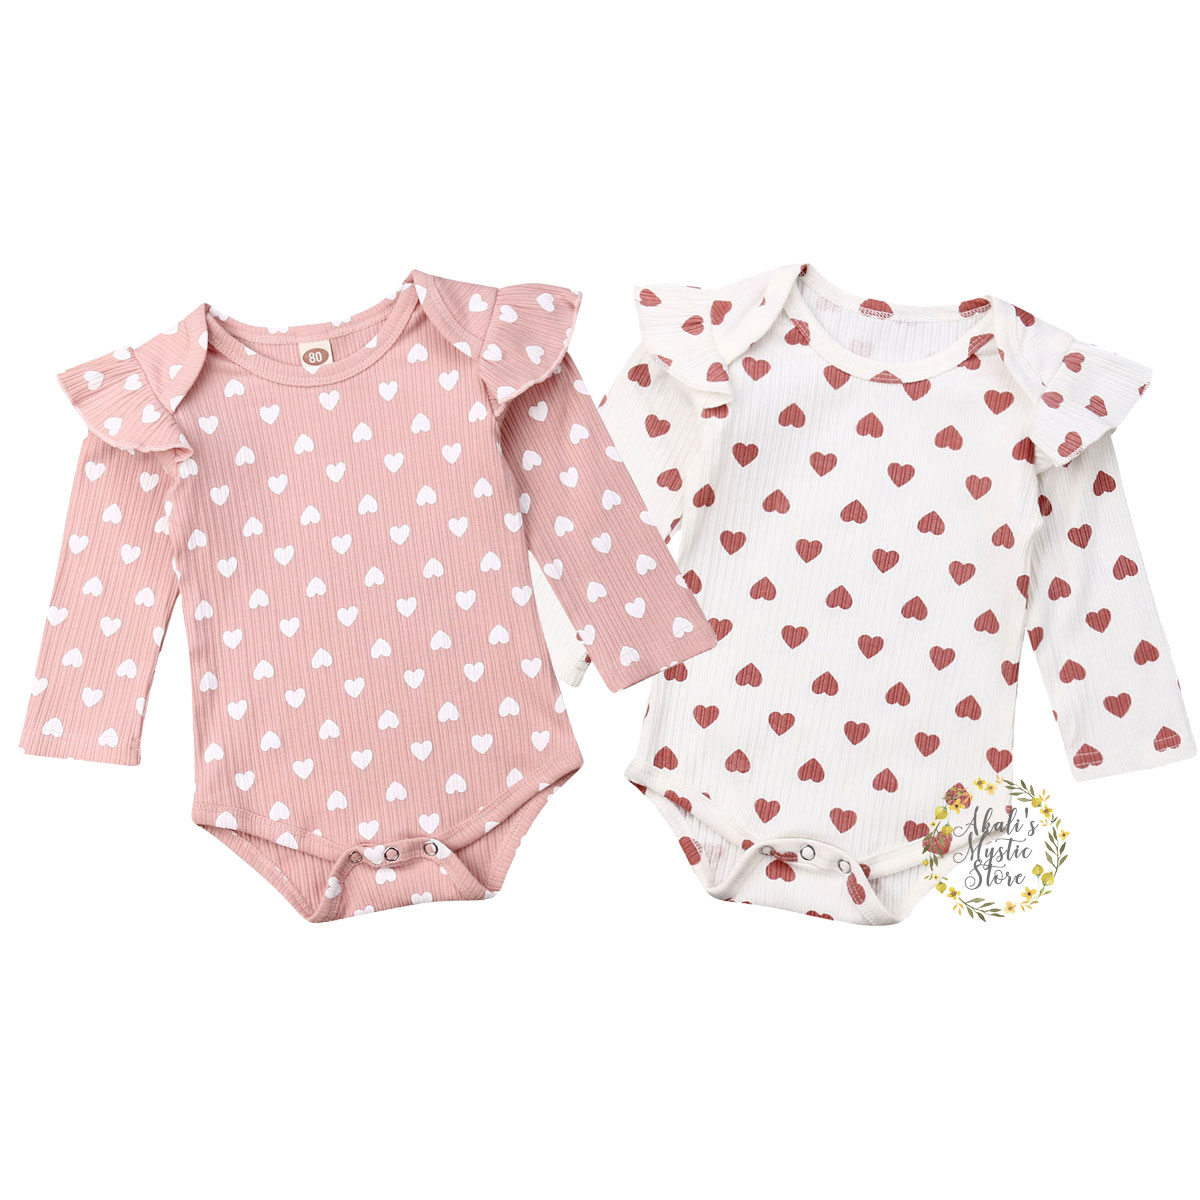 0-18M Newborn Infant Baby Girls Knitted Ruffles   Romper   Long Sleeve Cute Heart Print Jumpsuit Autumn Spring Baby Girl Costumes